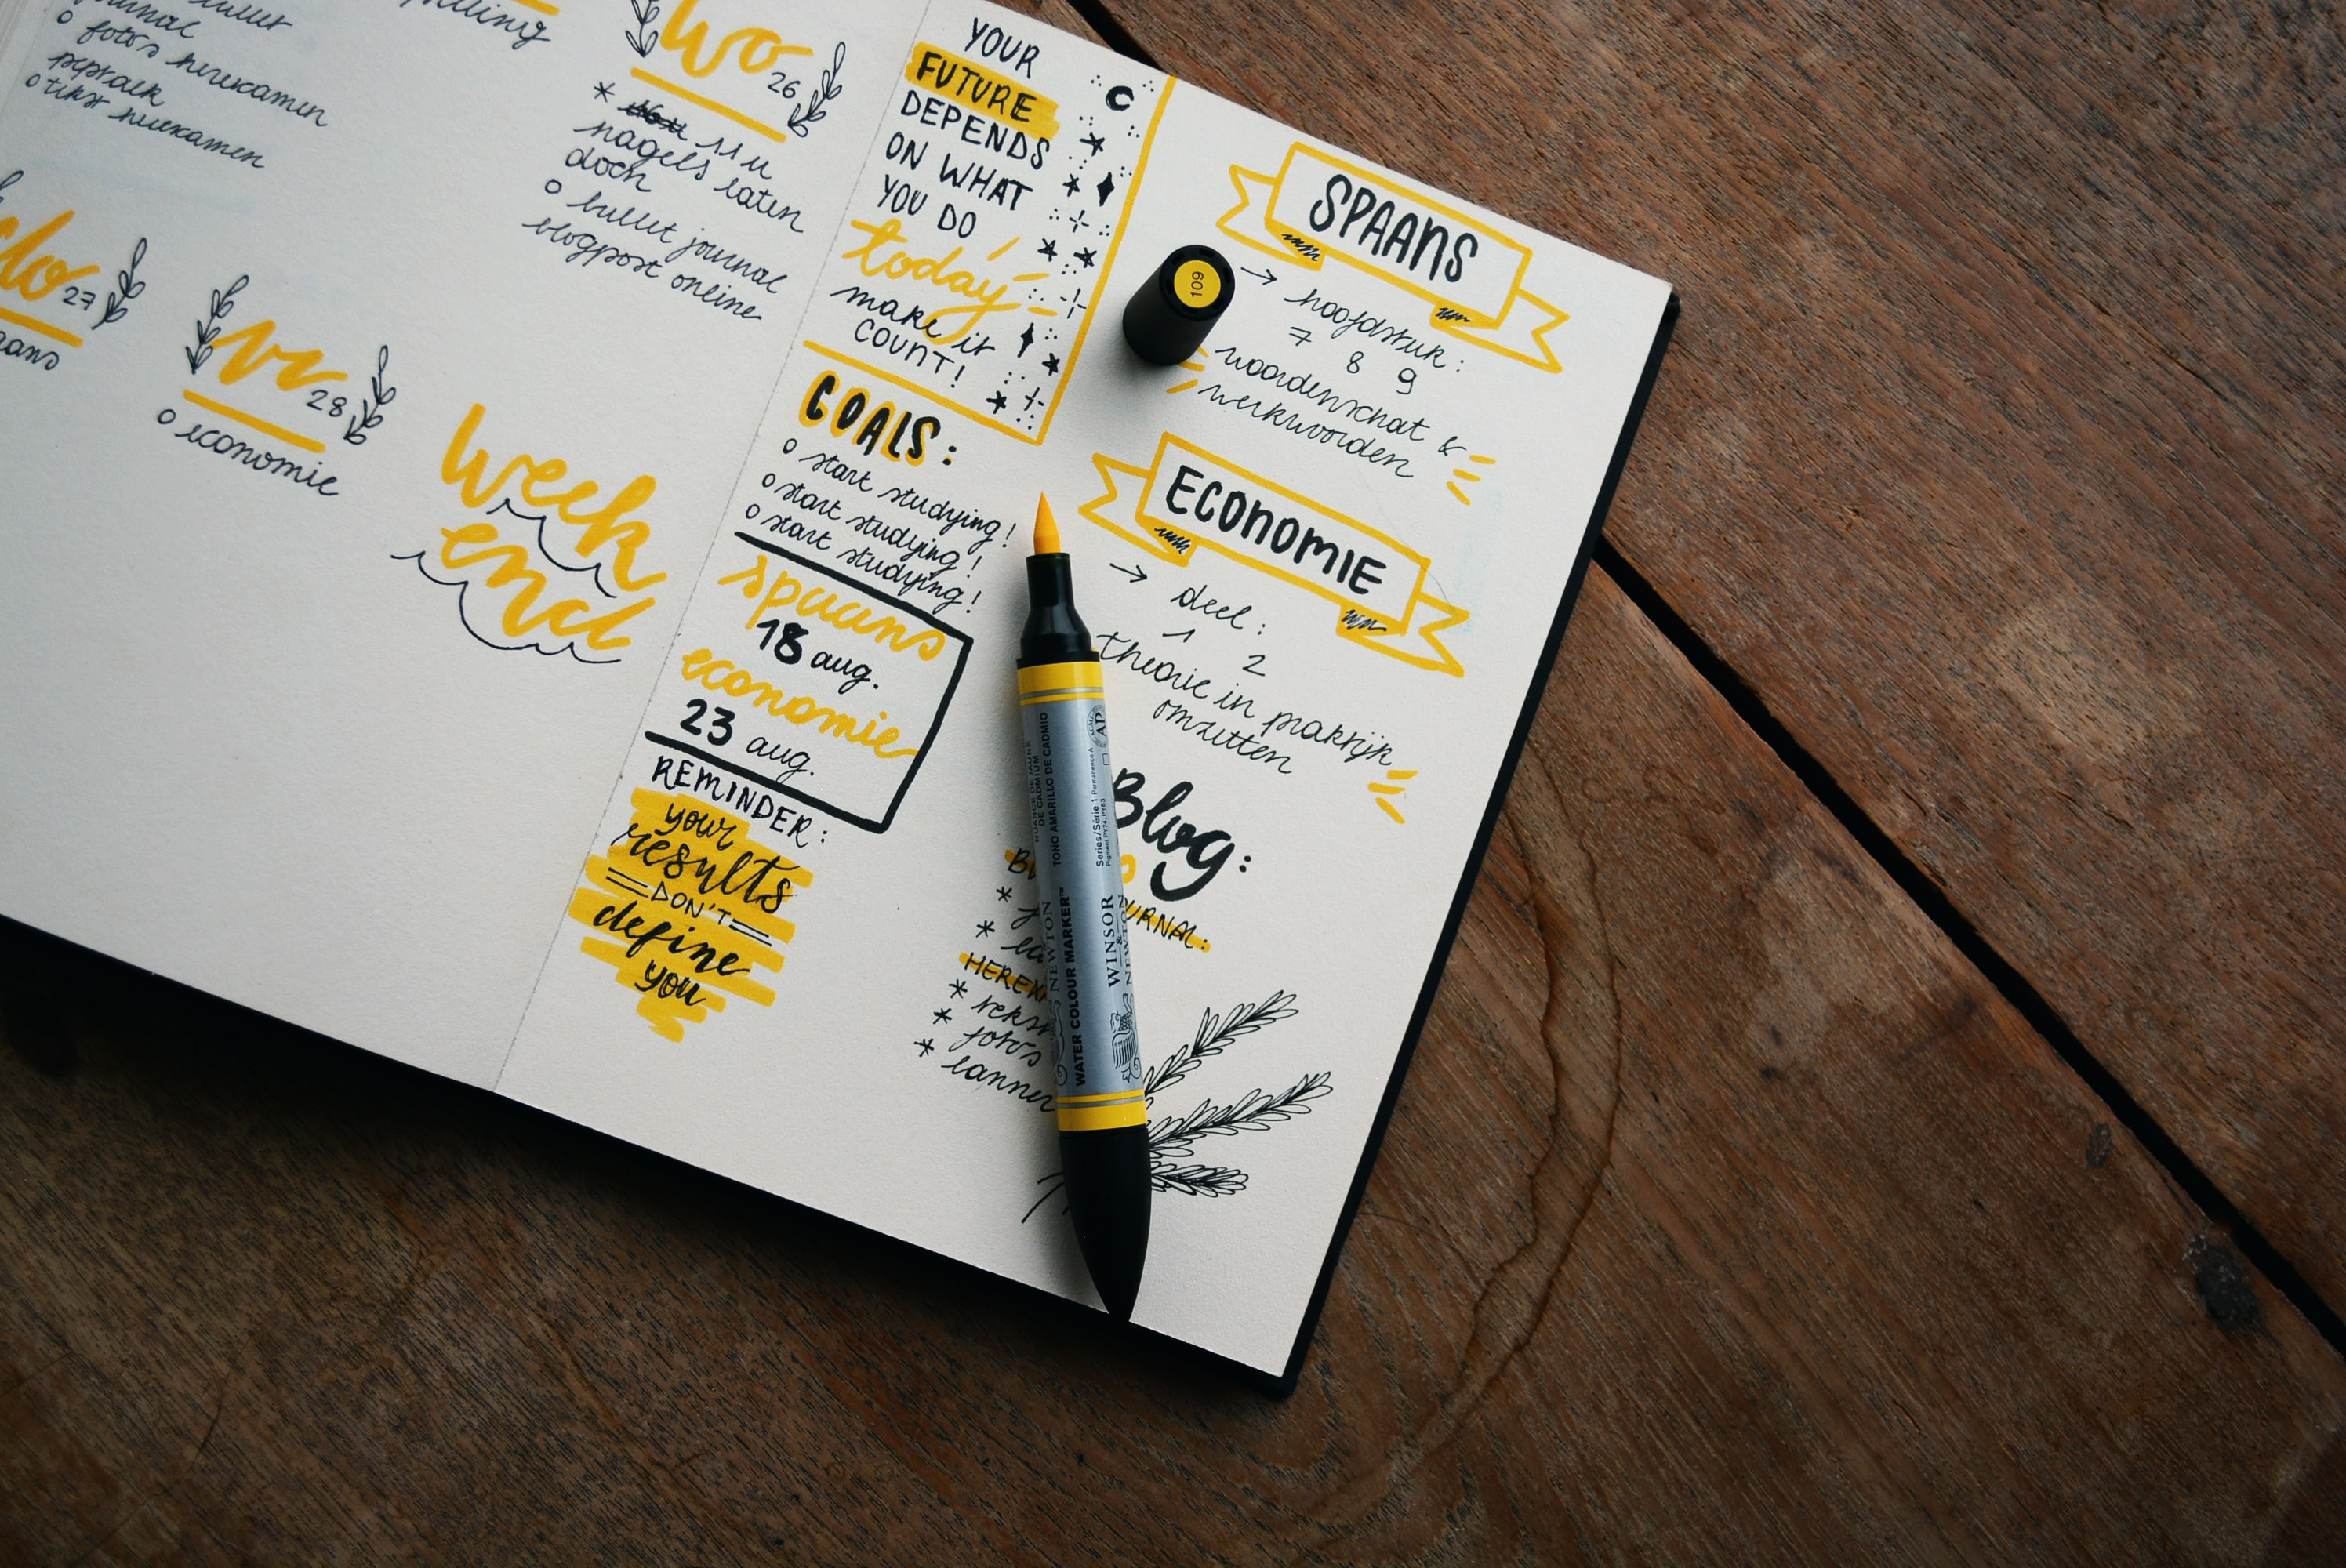 How to manage your time as a beginner freelancer